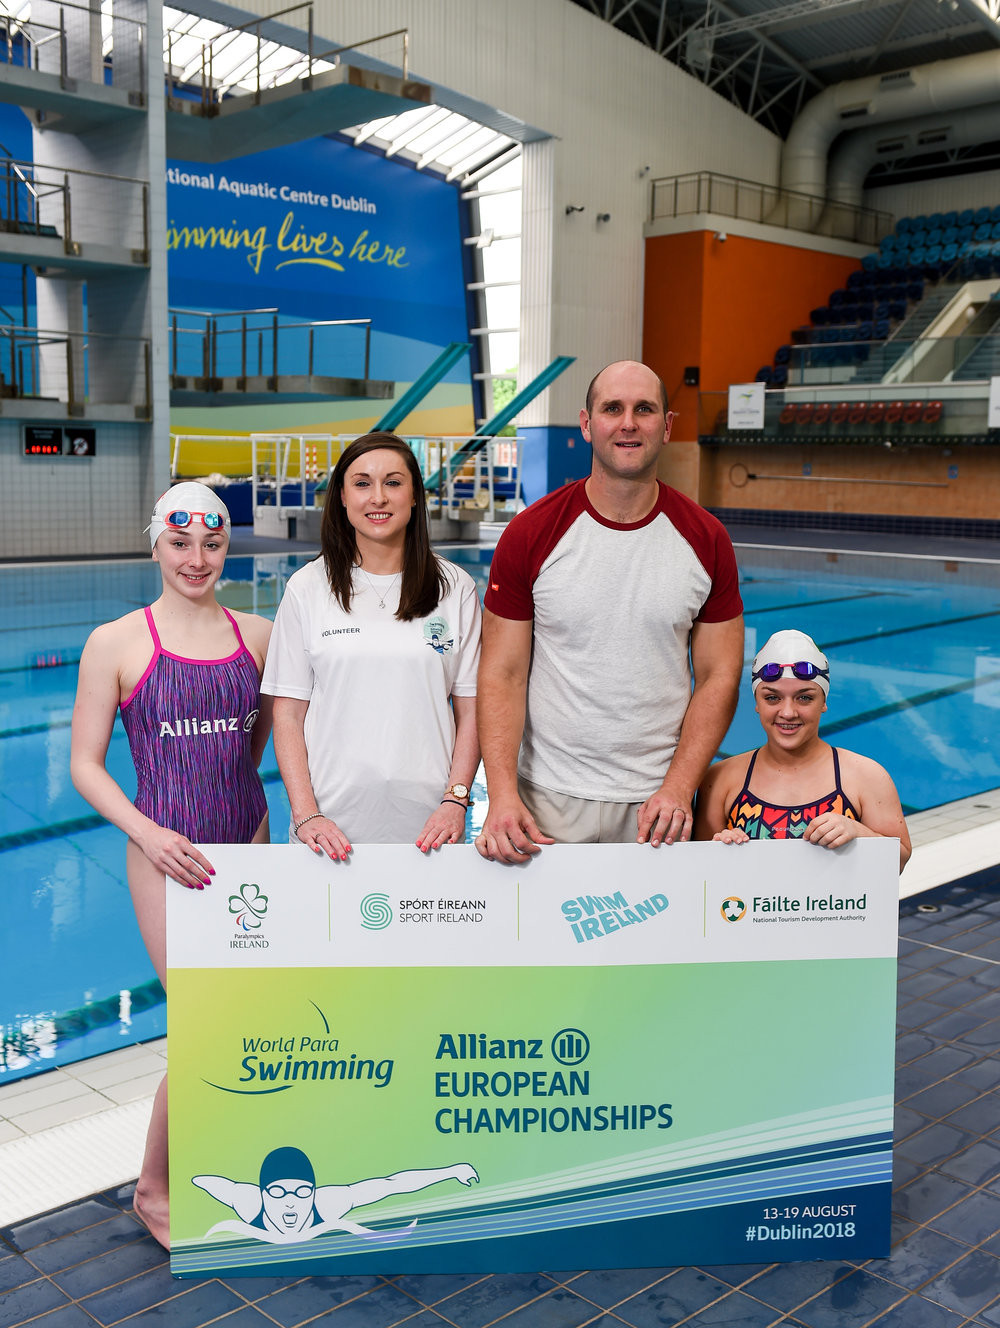 Tickets released for Dublin 2018 World Para Swimming European Championships